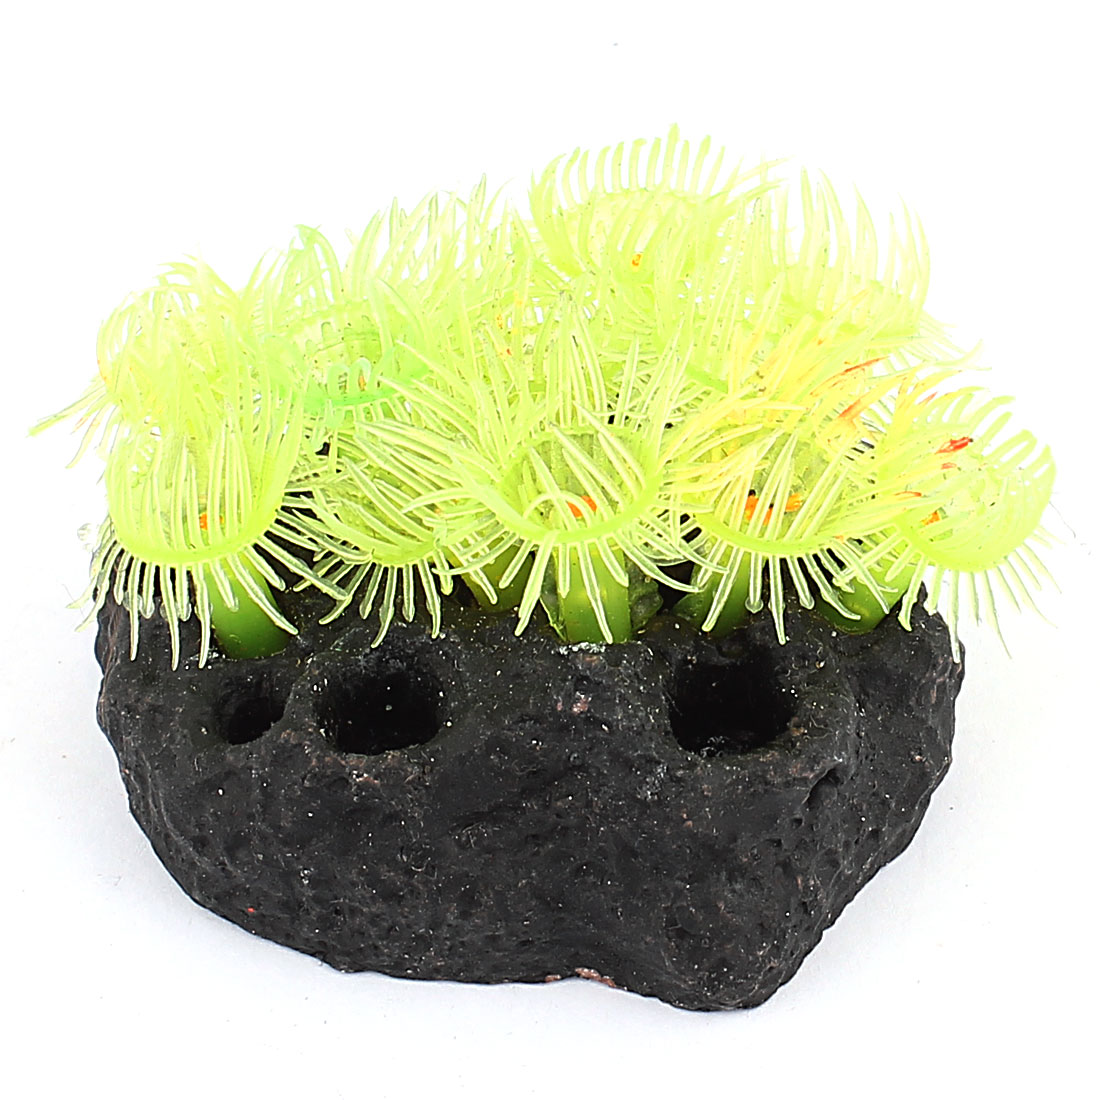 Aquarium Soft Silicone Artificial Sea Plant Coral Decor Flower Ornament